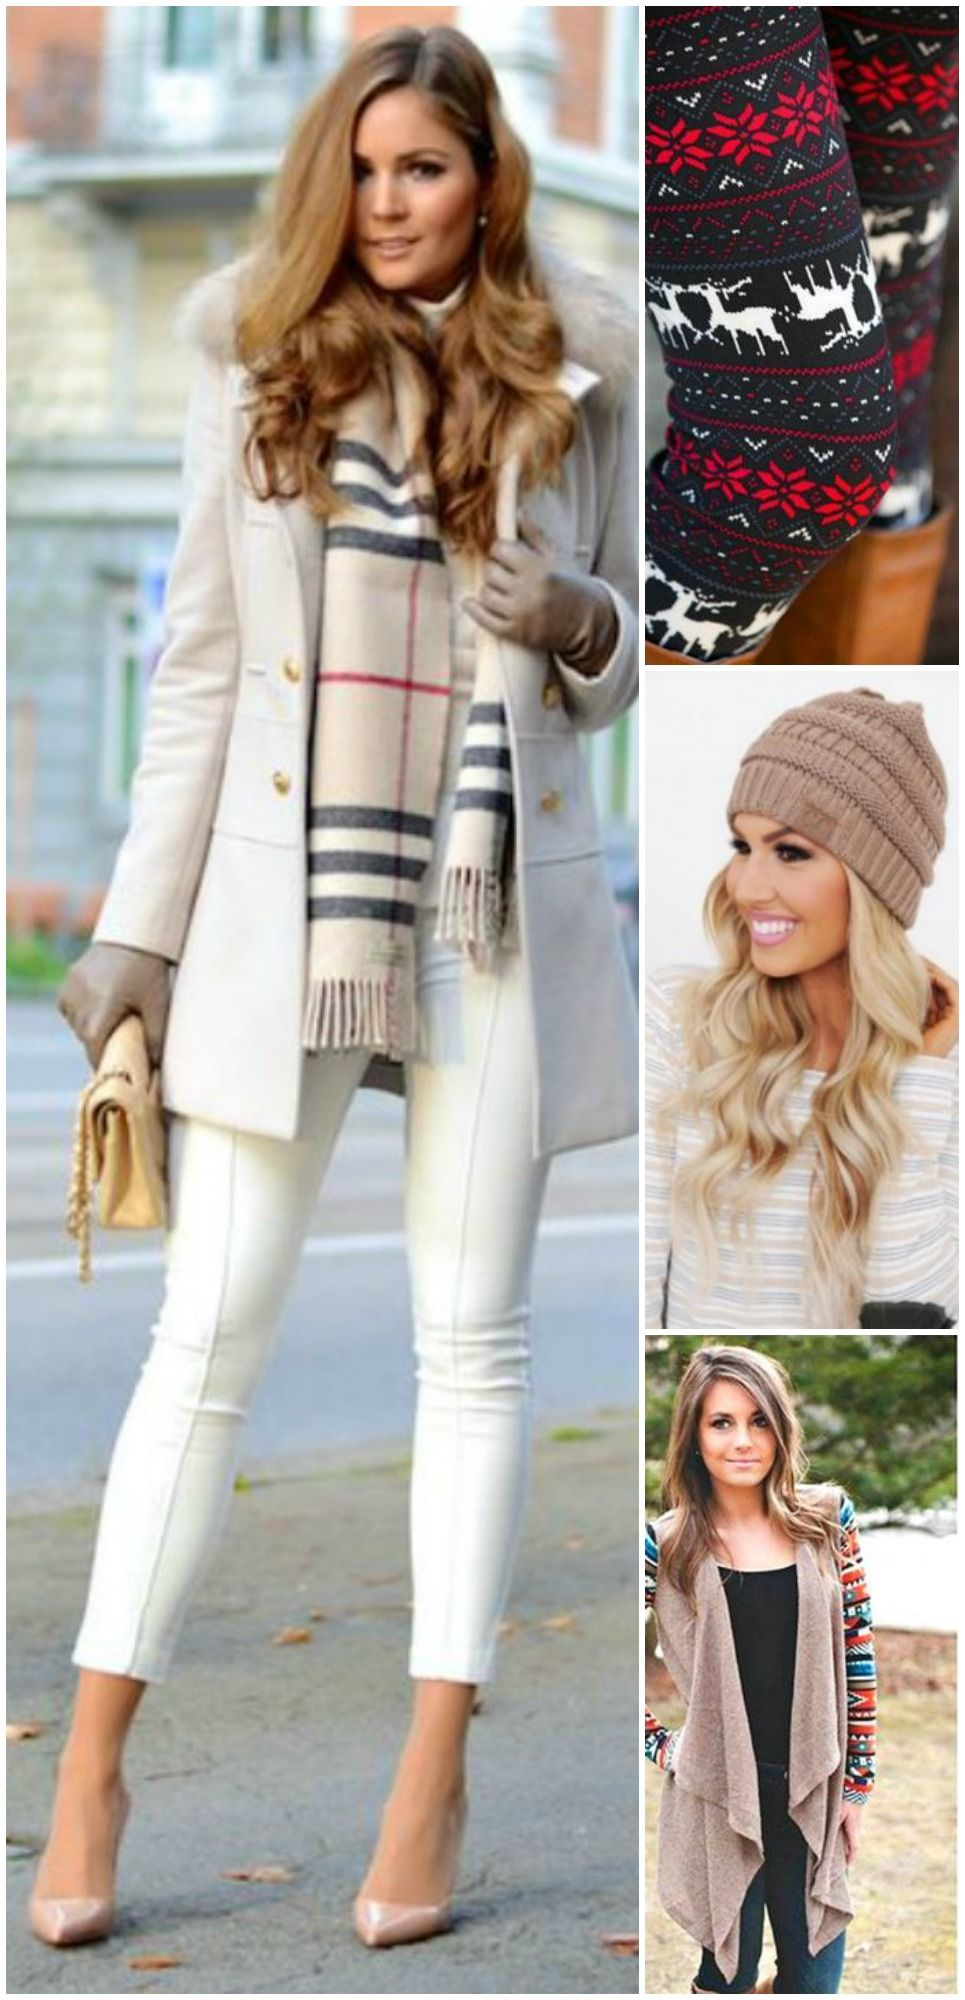 ba4e404ccf Winter Outfit Ideas. TheChicFind.com